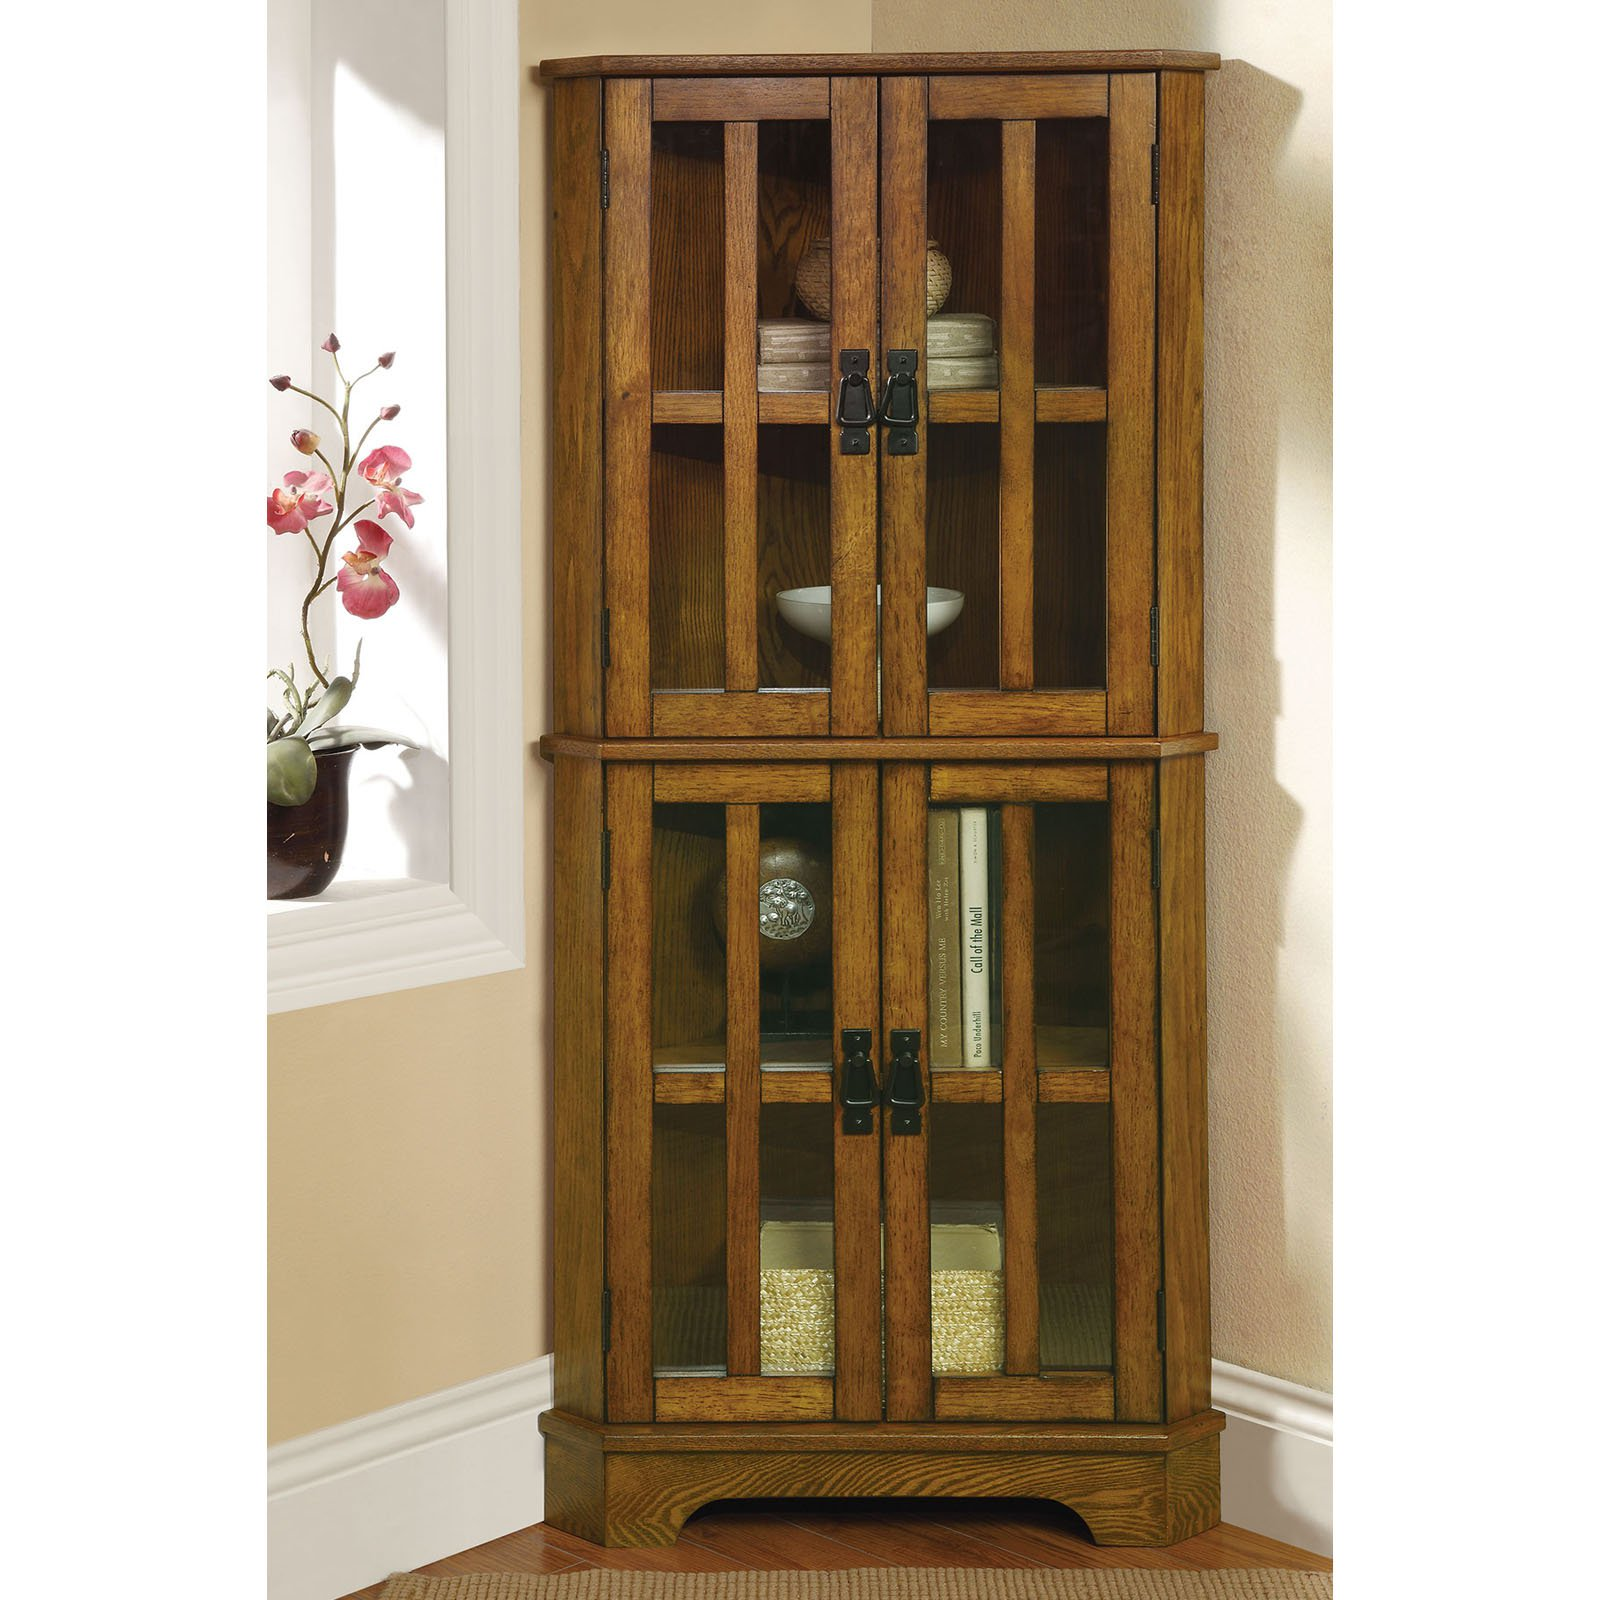 Coaster Company Curio Cabinet with Window Panel Styled Doors, Golden Brown by Coaster Company